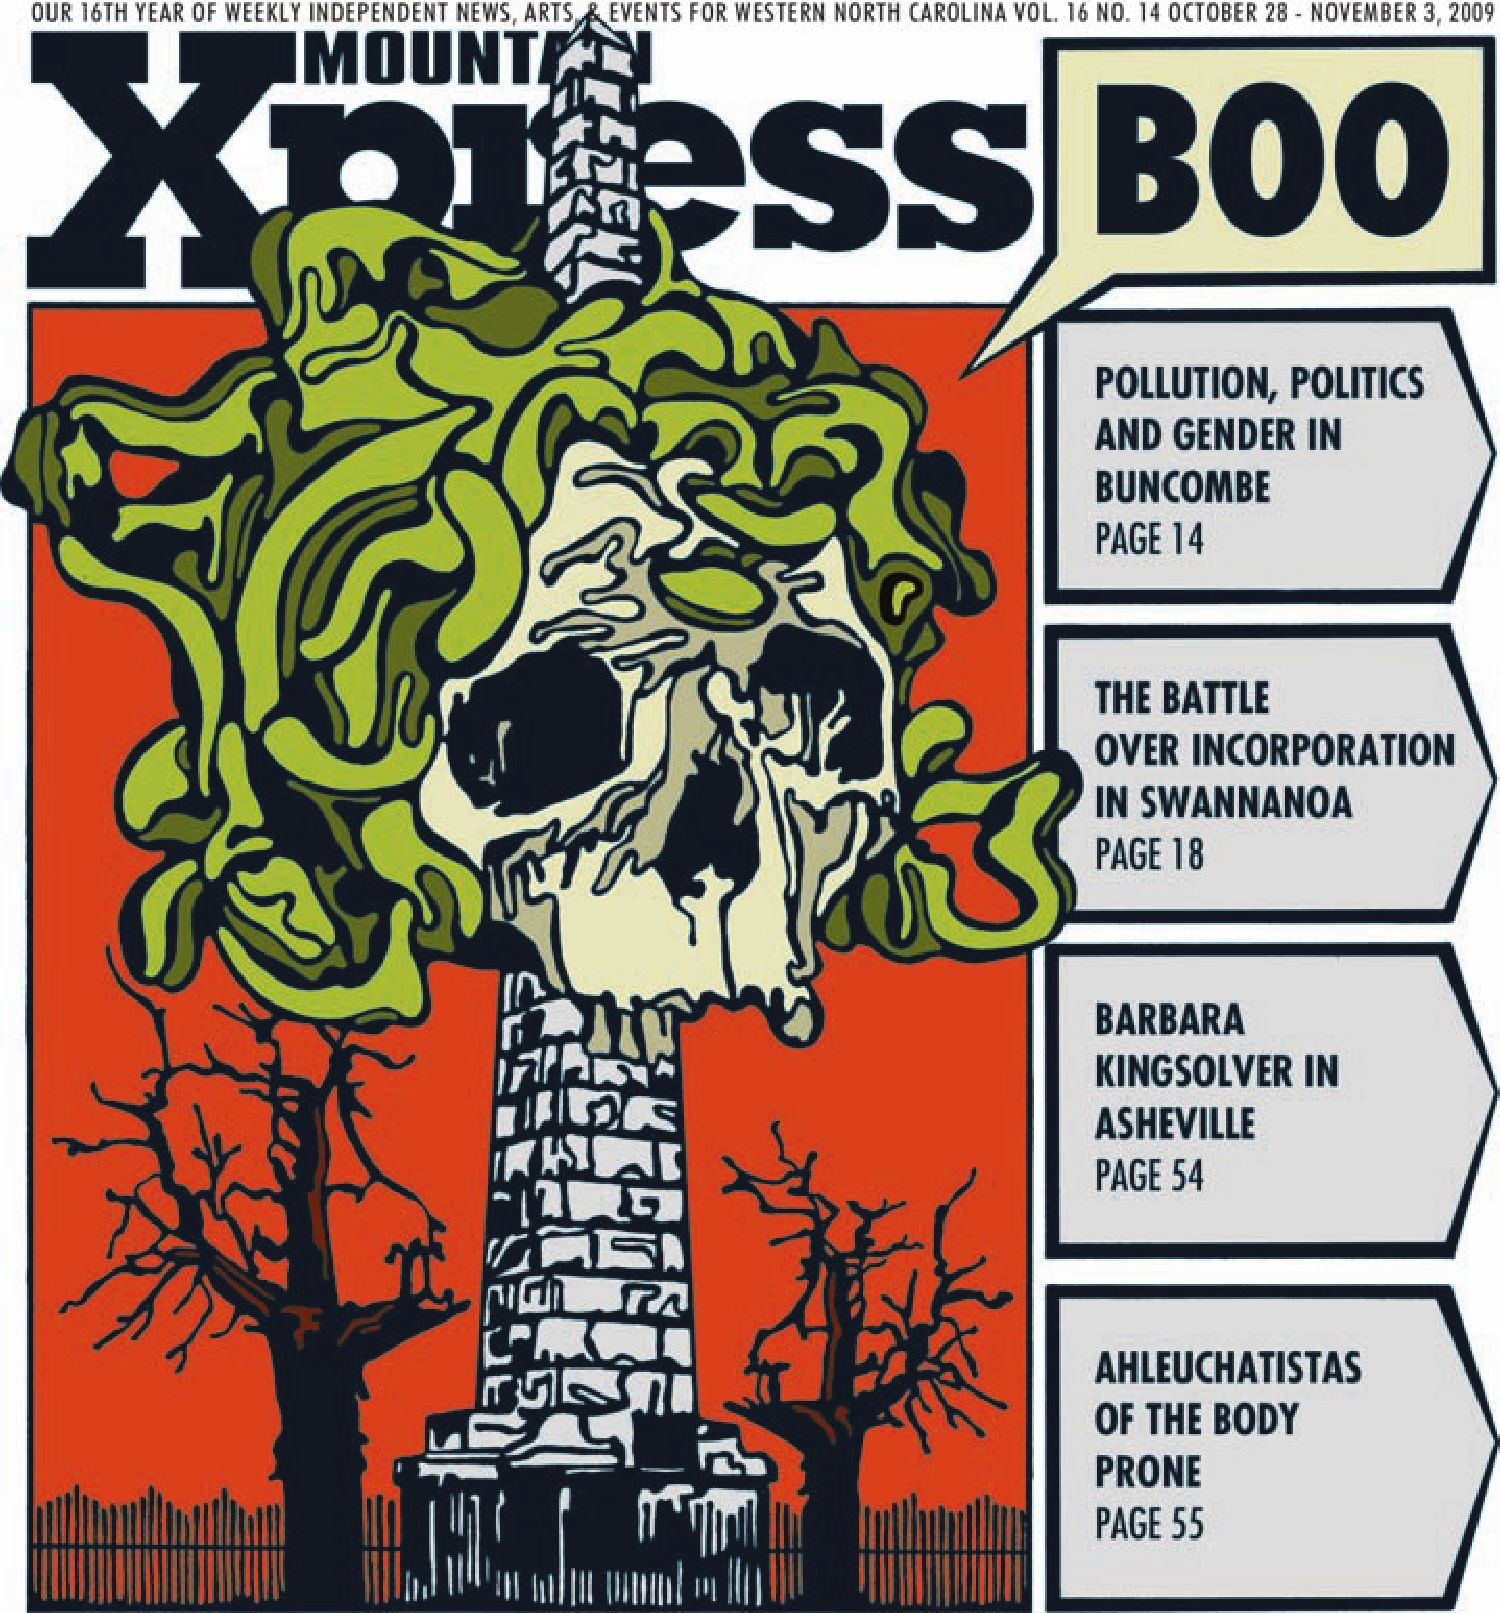 mountain xpress, october 28 2009 by mountain xpress - issuu